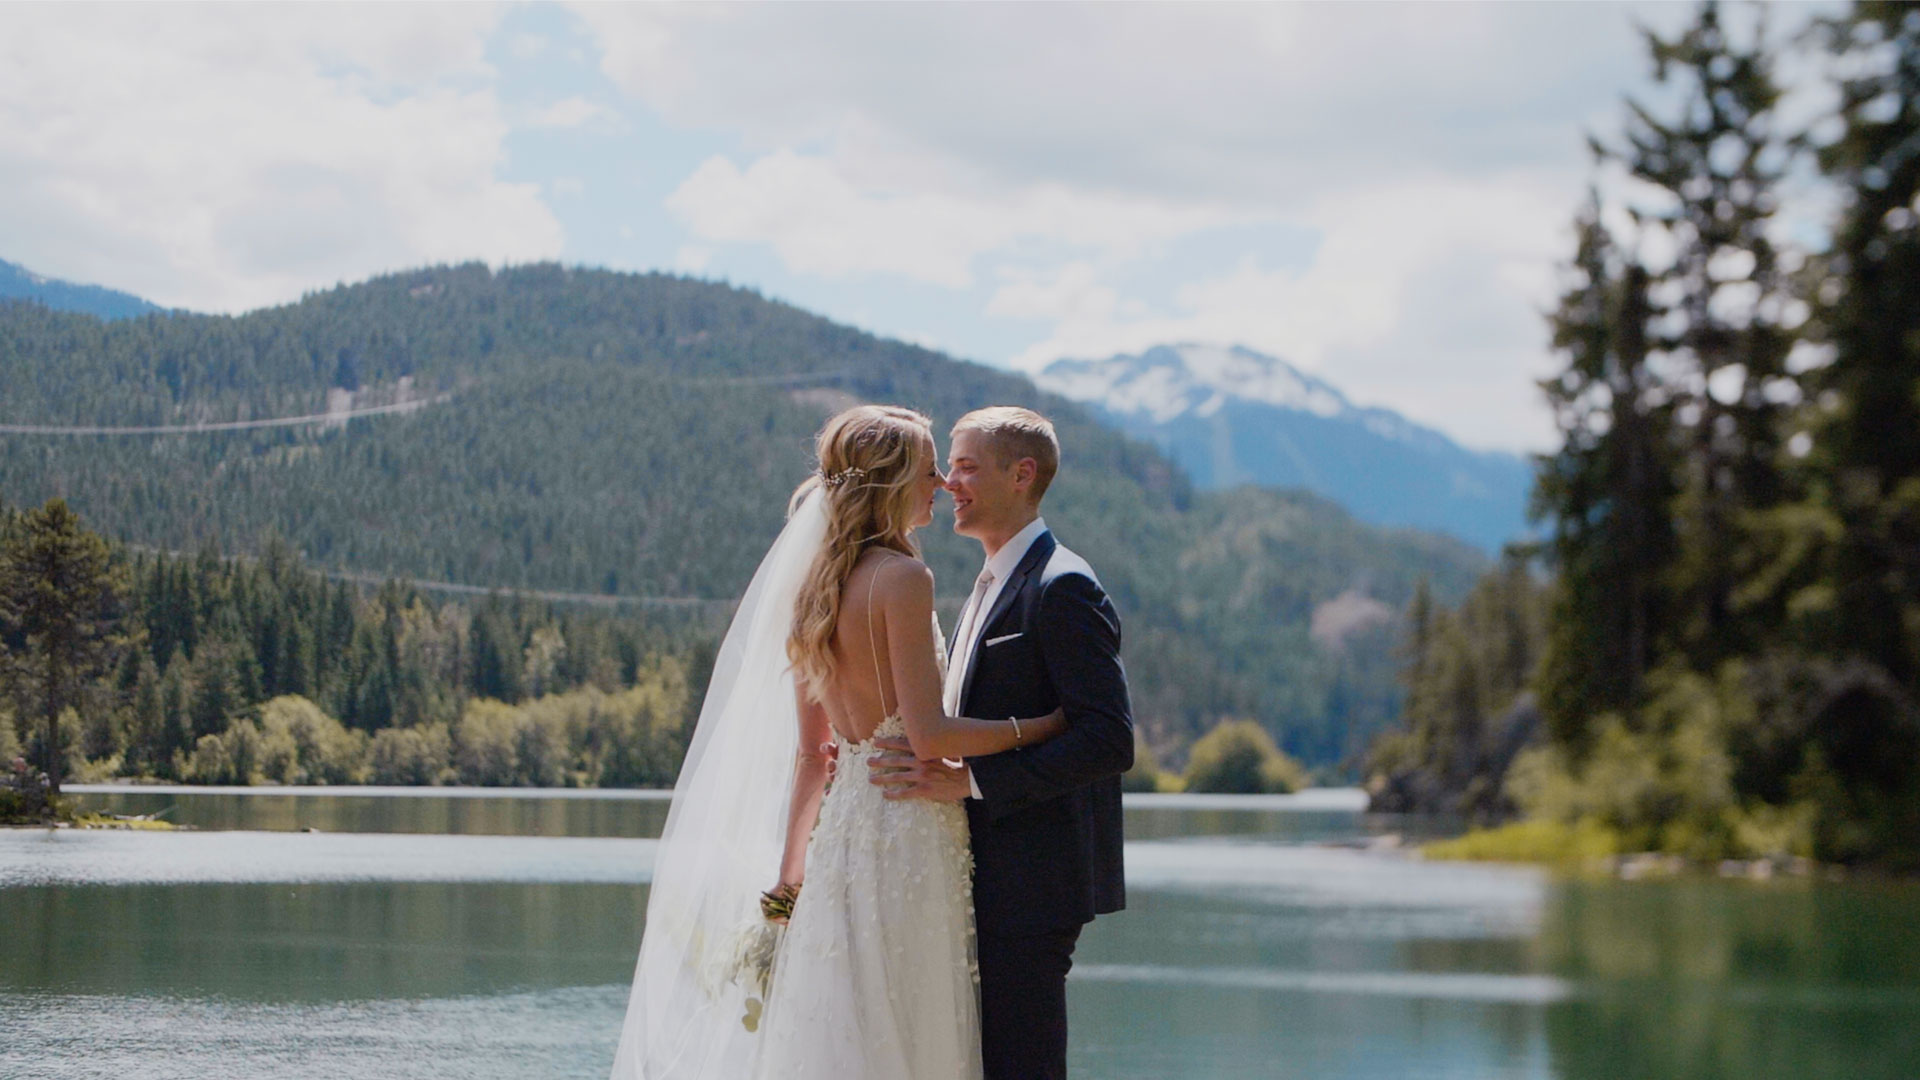 North Arm Farm Wedding in Pemberton BC. Whistler Wedding Videography by Kismet Creative